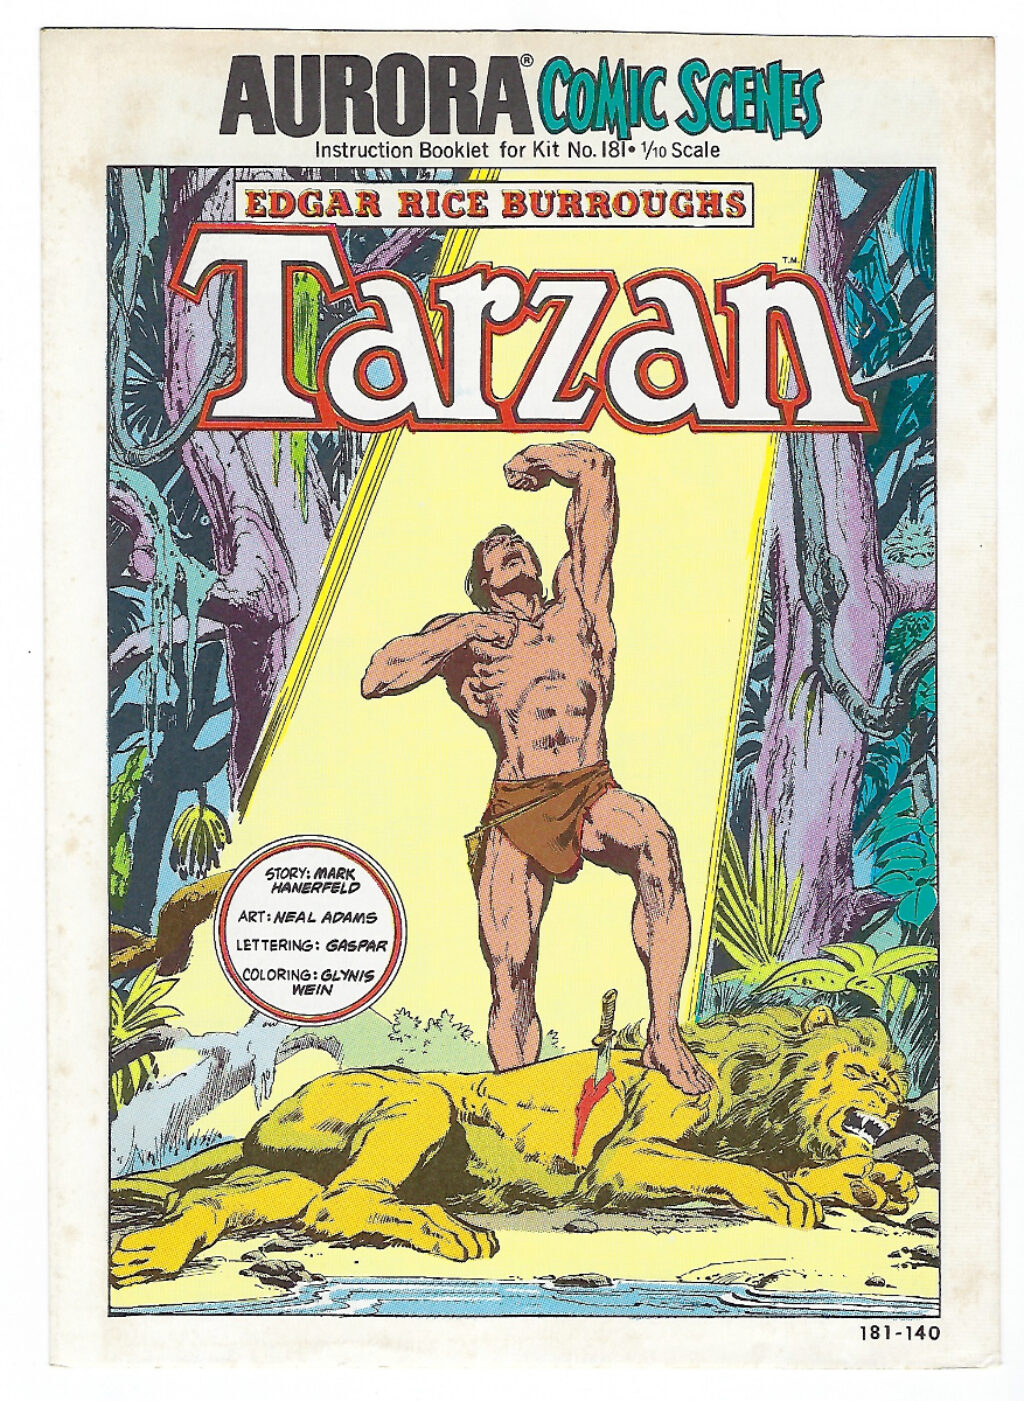 Aurora Comic Scenes Tarzan Model Kit Comic Book & Instructions Booklet 1